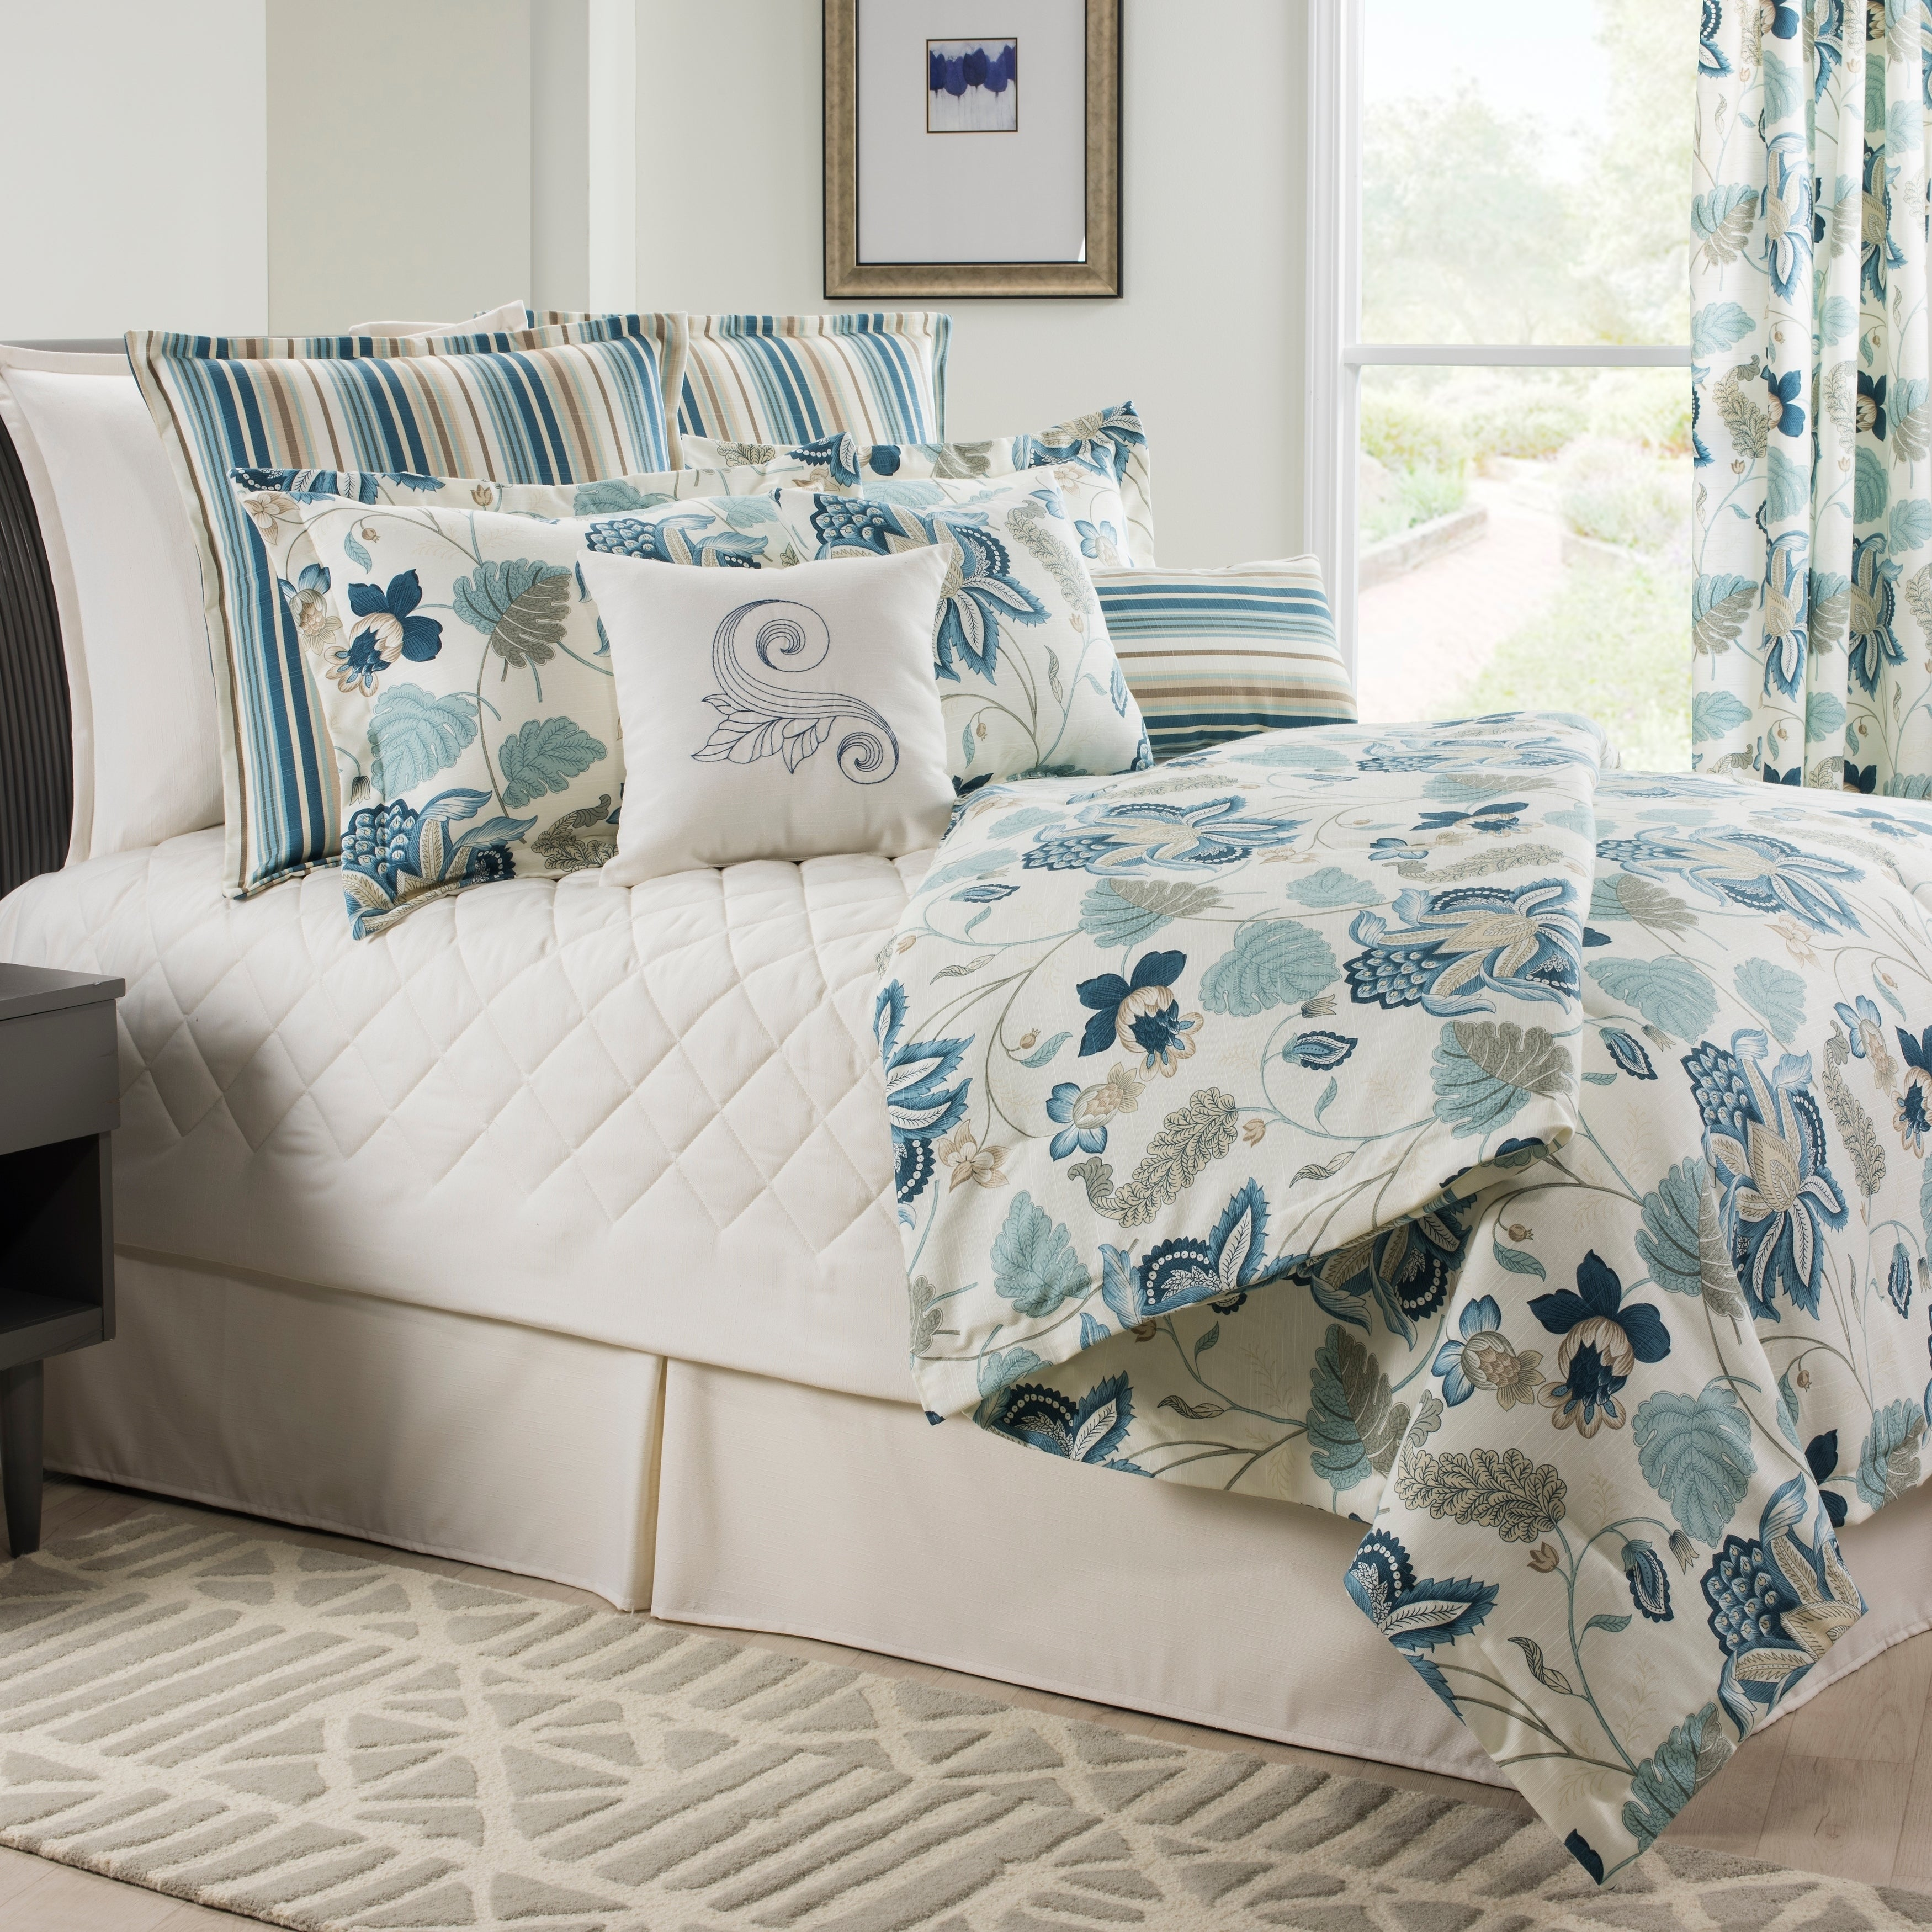 Savannah Floral Tradinional Blue Daybed Set On Sale Overstock 28082530